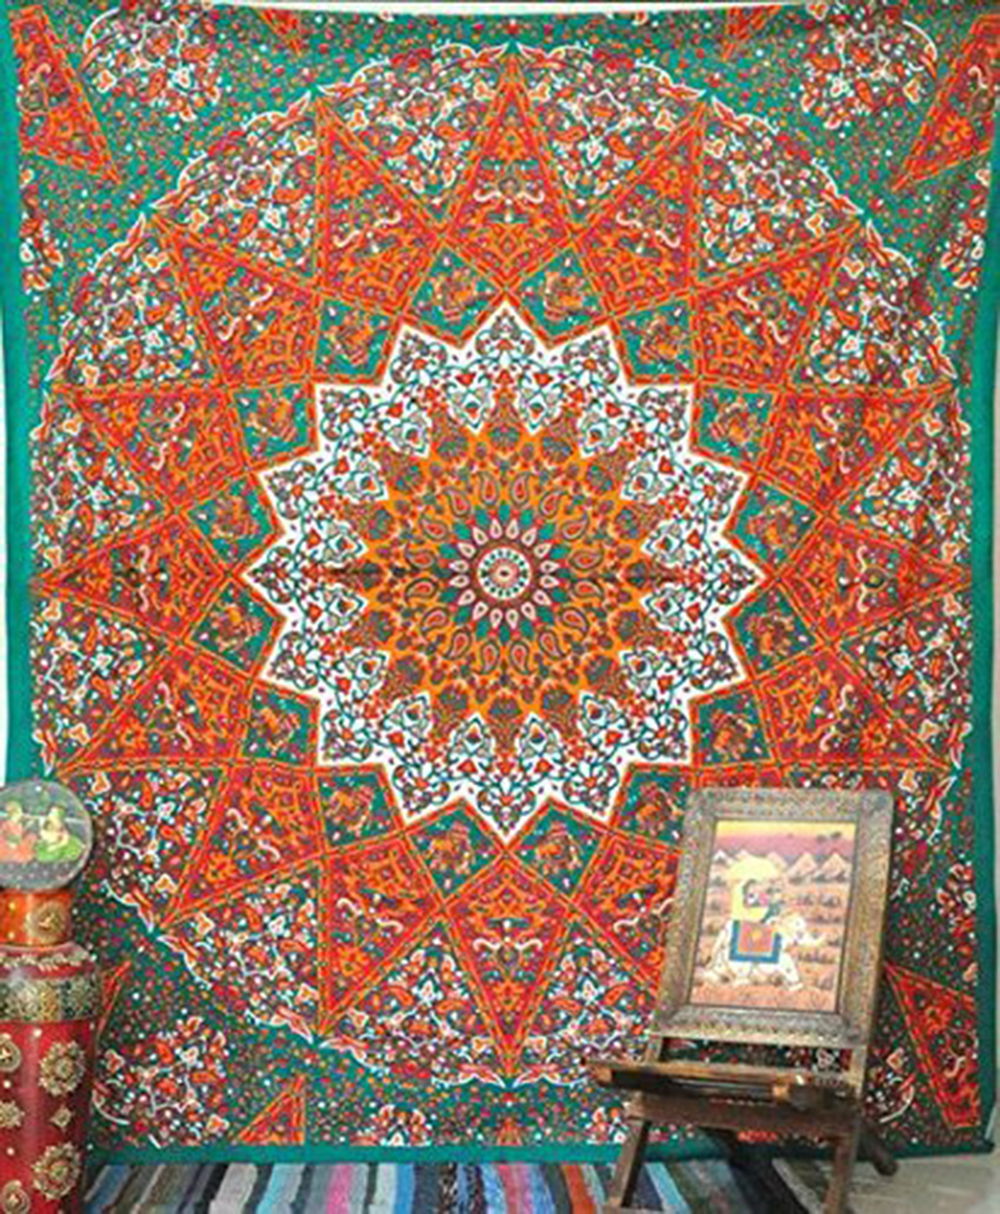 Enipate 1 X Queen Indian Star Mandala Psychedelic Tapestry,Hippie Bohemian Wall Hanging Tapestries,Ethnic Home Decor 145*145cm